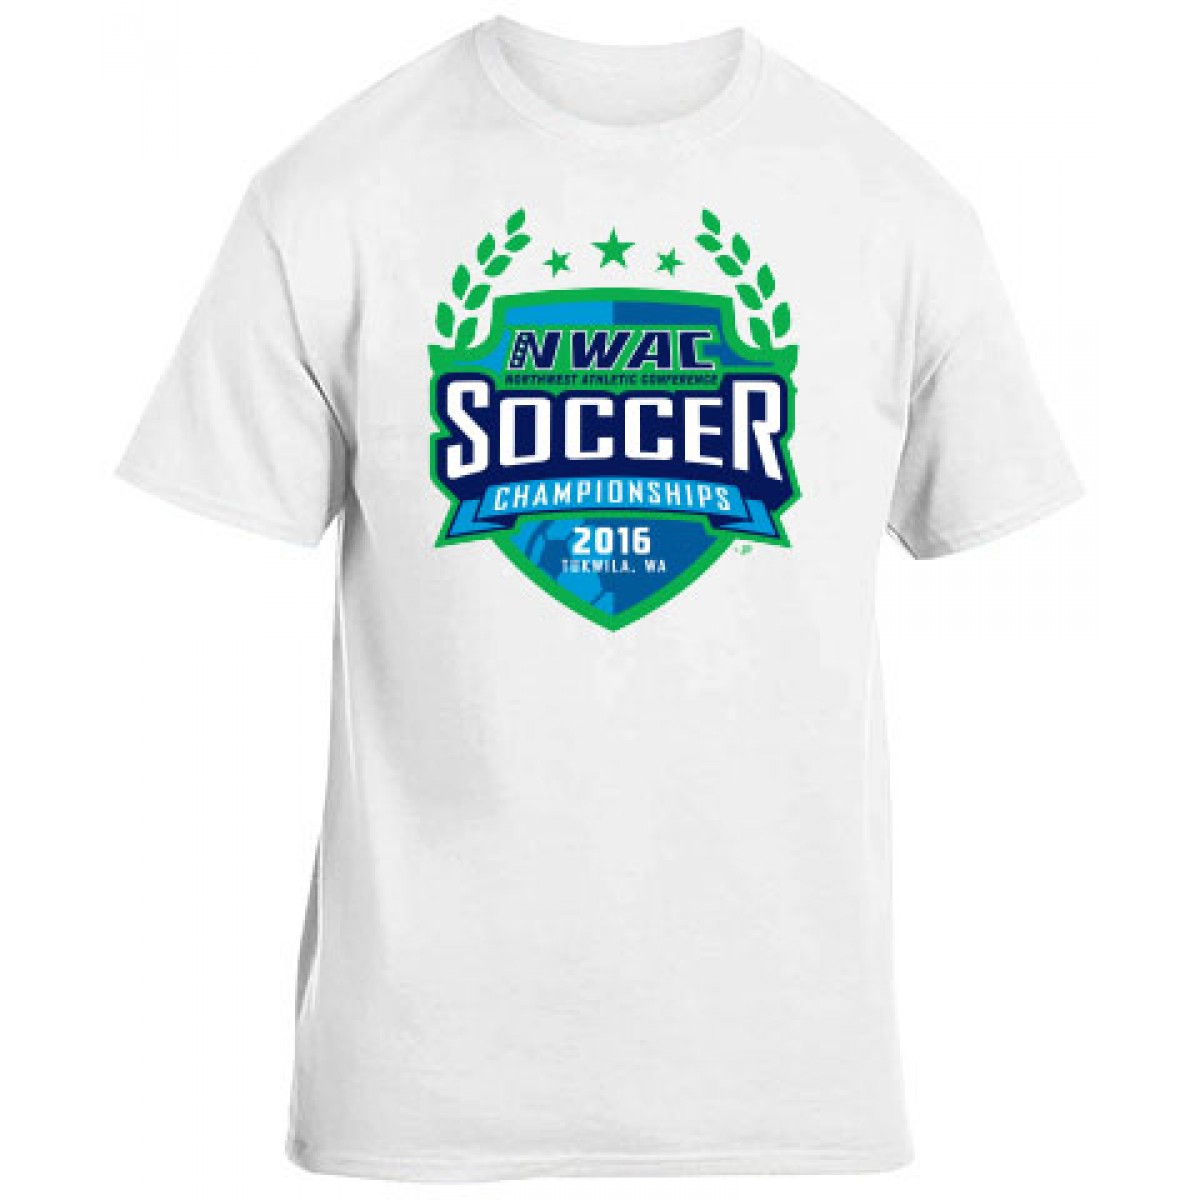 2016 NWAC Soccer Championships Special Item-White-XL